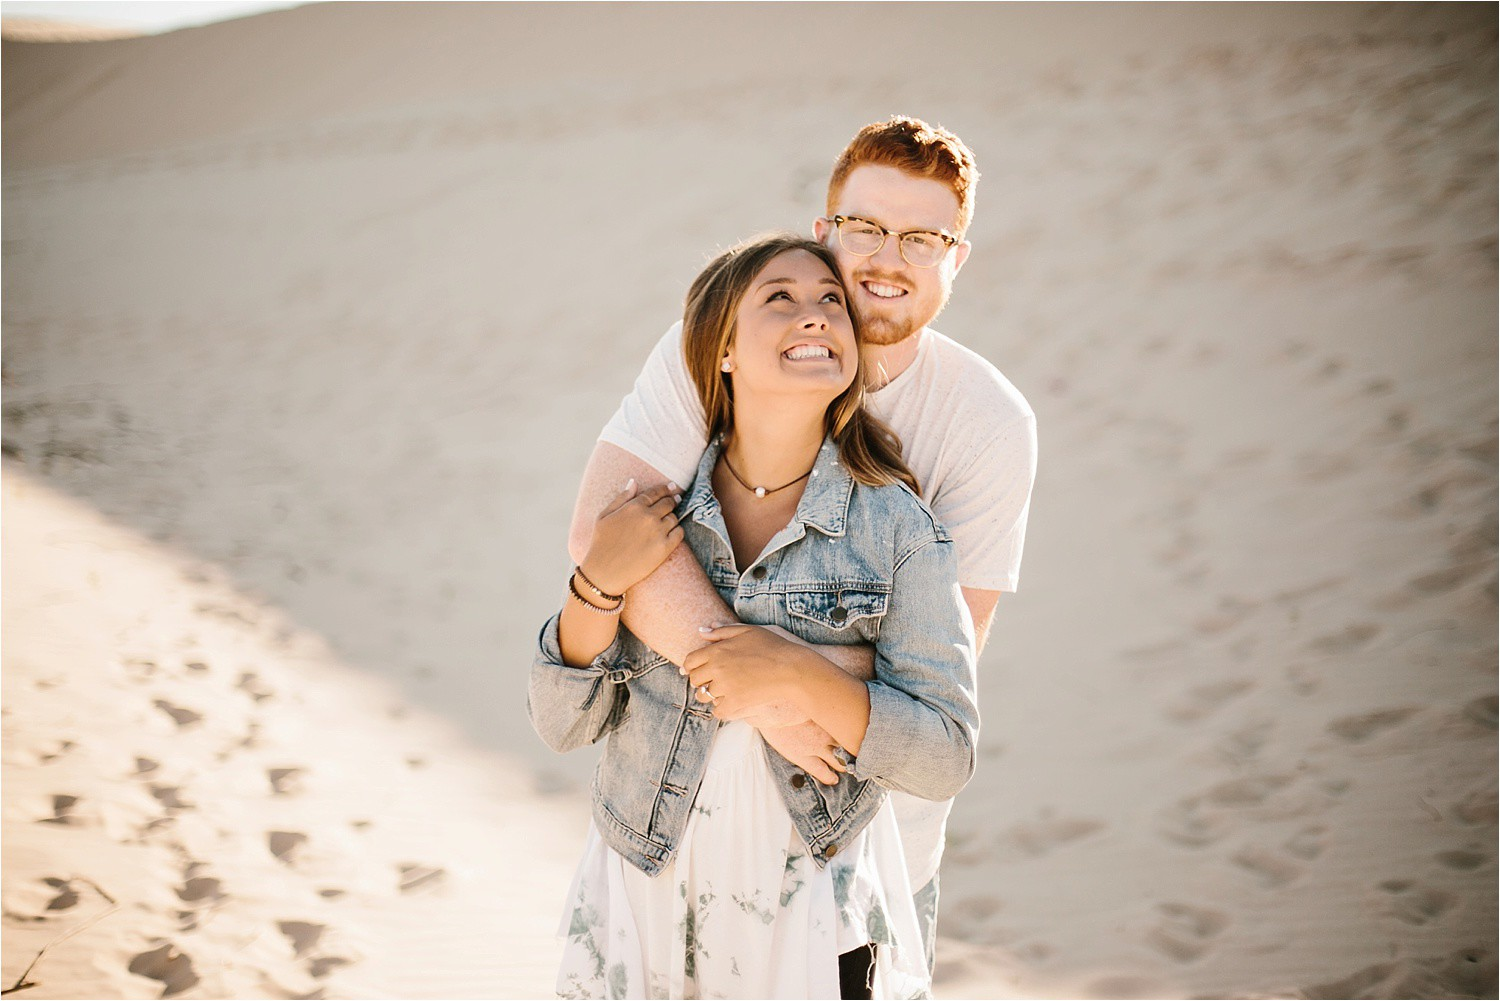 Lauren + Jacob __ a monahans sand dunes engagement session at sunrise by North Texas Wedding Photographer, Rachel Meagan Photography __ 45